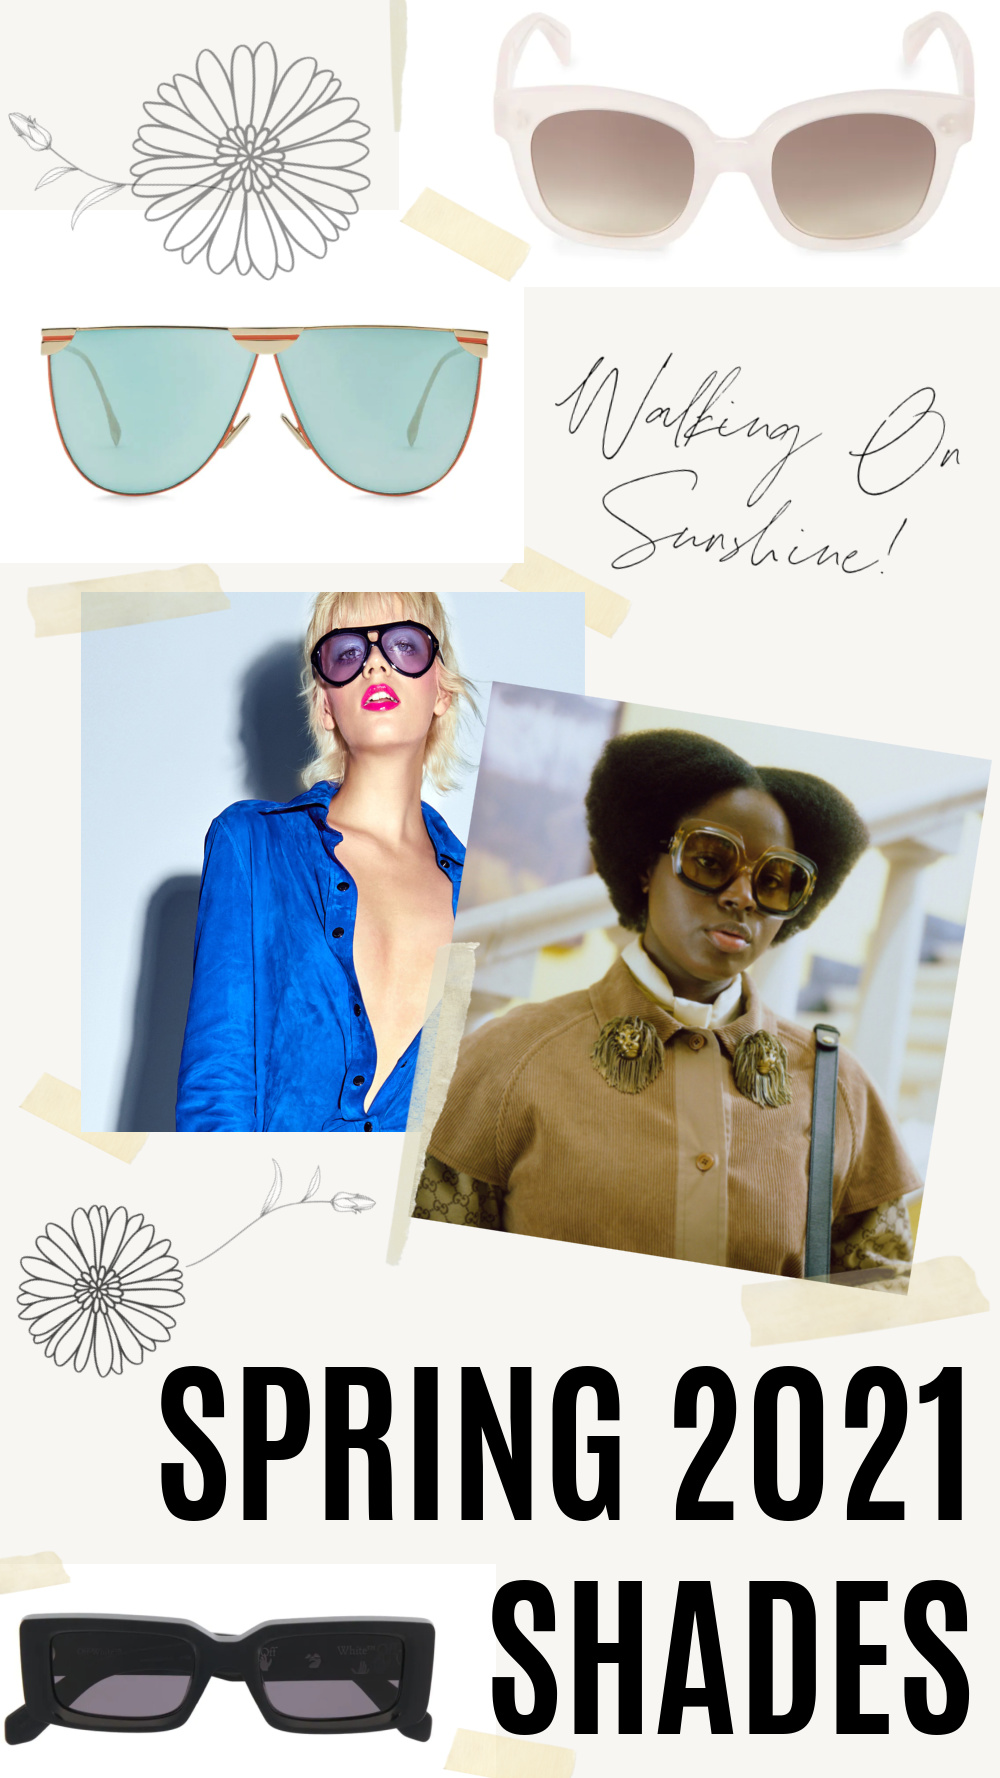 Spring 2021 Sunglasses for Every Budget I DreaminLace.com #springstyle